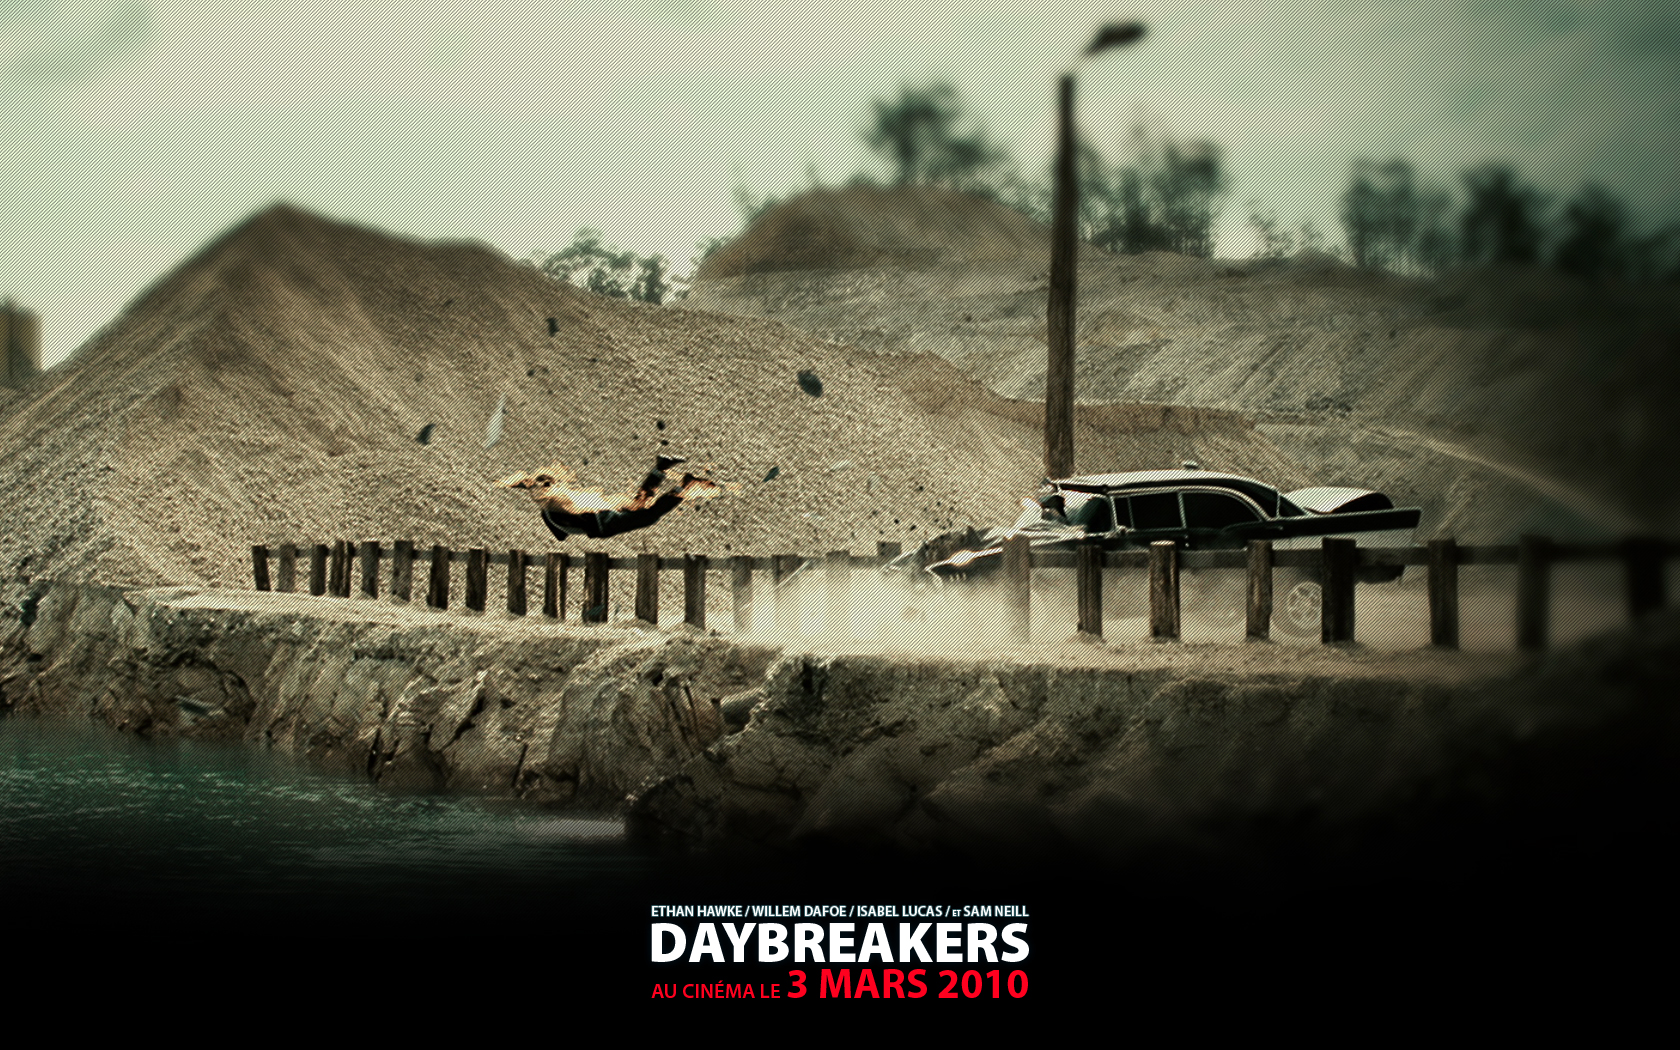 Daybreakers_04_1680x1050.jpg